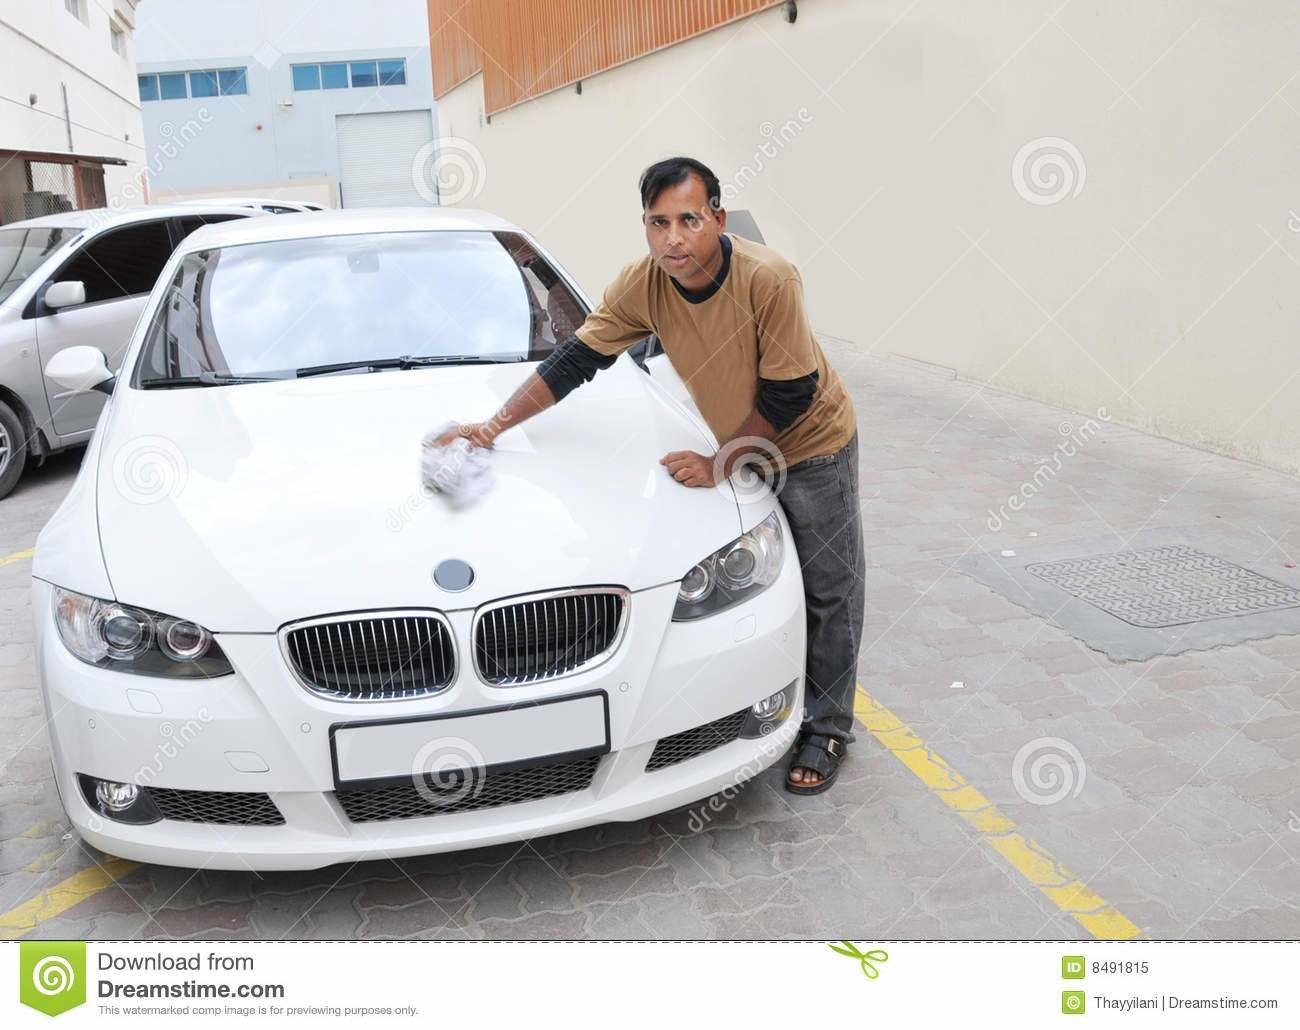 Latest Car Boy Cleaning A Bmw Car Royalty Free Stock Photo Free Download